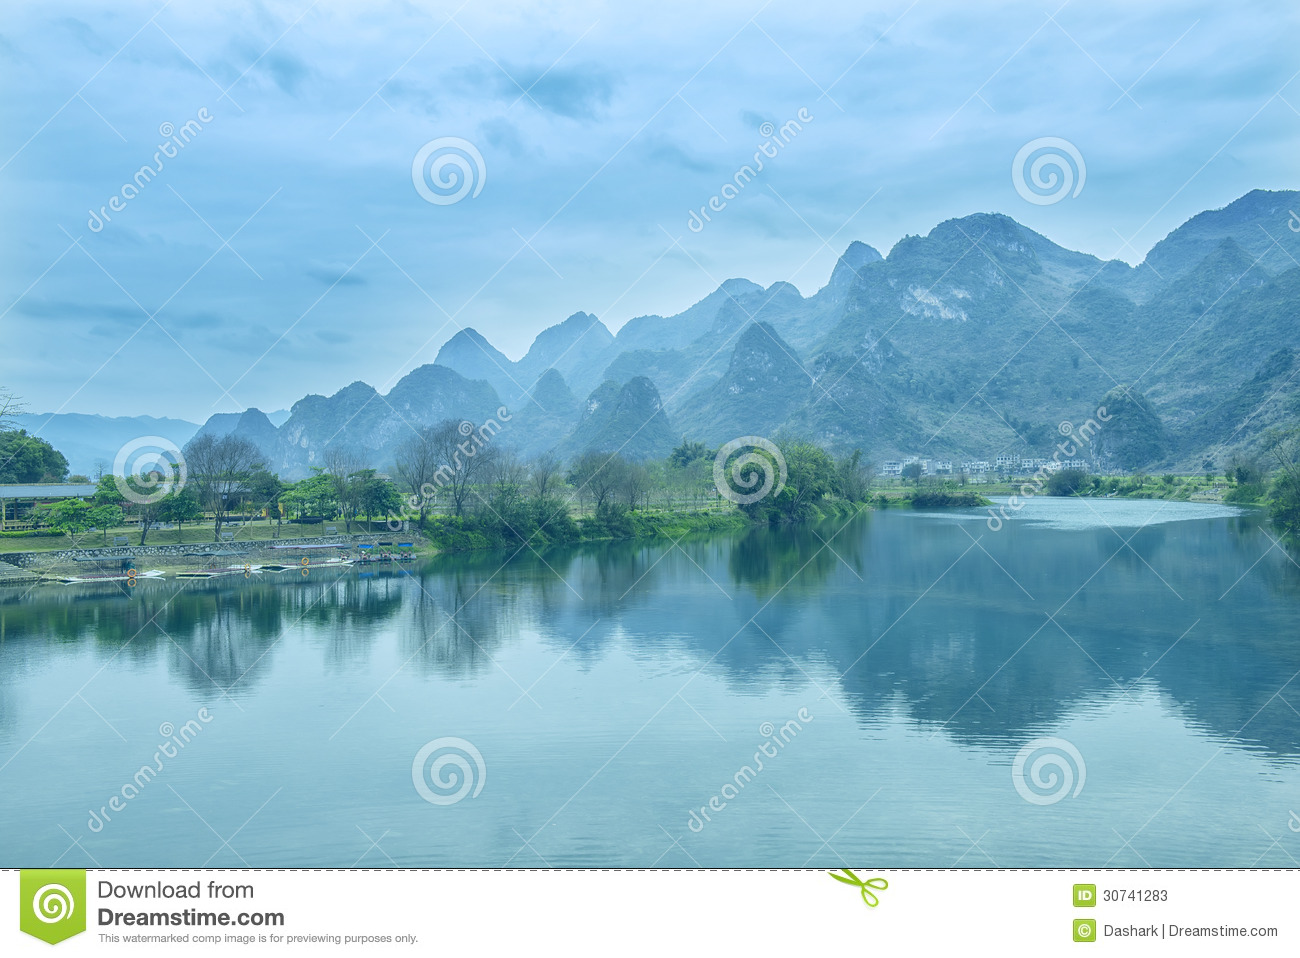 Karst Mountain Landscape In Yangshuo Guilin, Stock Photos - Image: 30741283